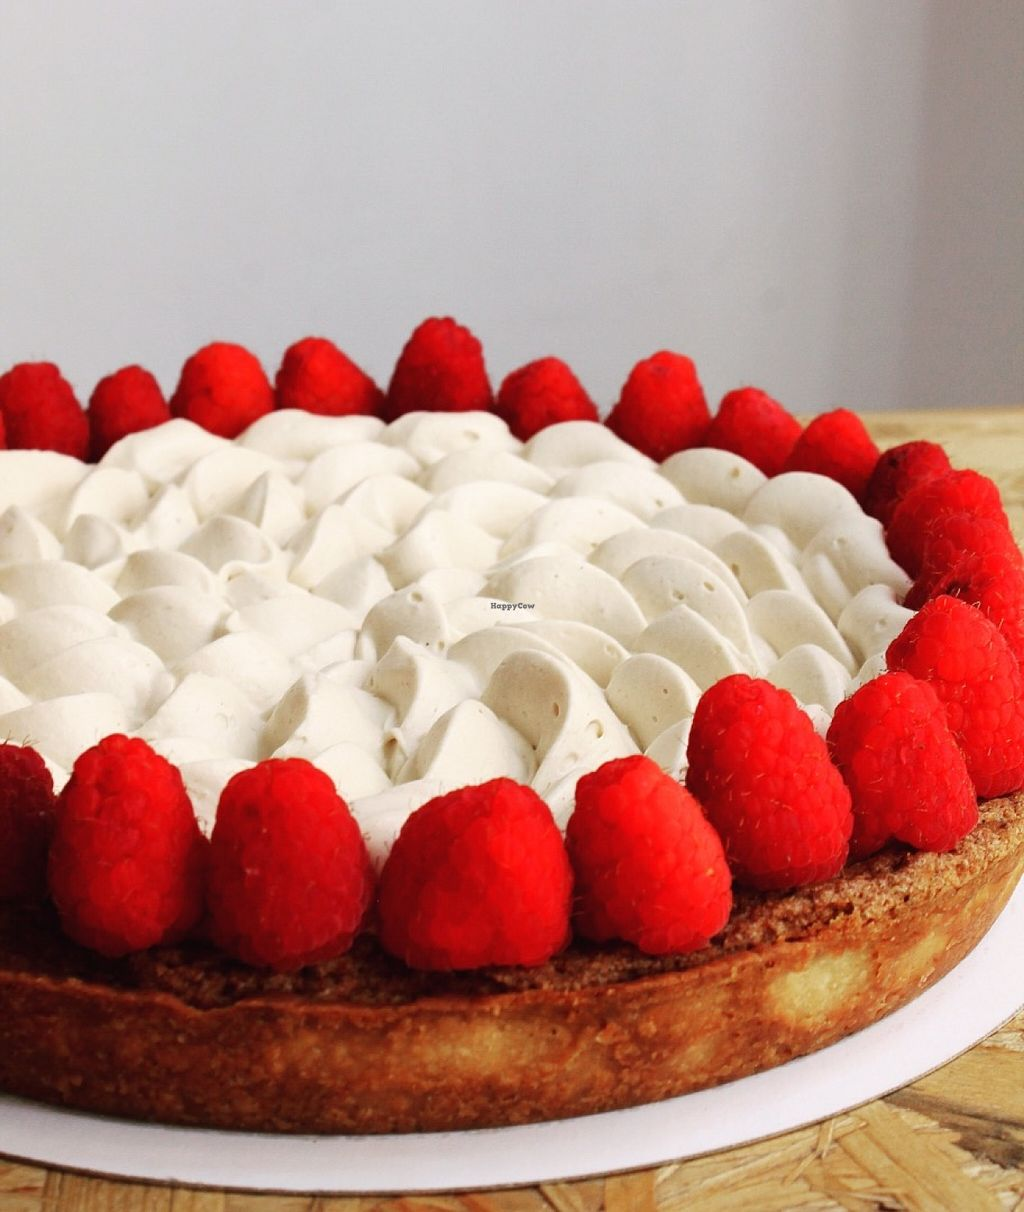 """Photo of El Vergel Veggie Restaurant  by <a href=""""/members/profile/Alvaro%20El%20Vergel"""">Alvaro El Vergel</a> <br/>Almonds and strawberries pie <br/> June 27, 2016  - <a href='/contact/abuse/image/53682/156452'>Report</a>"""